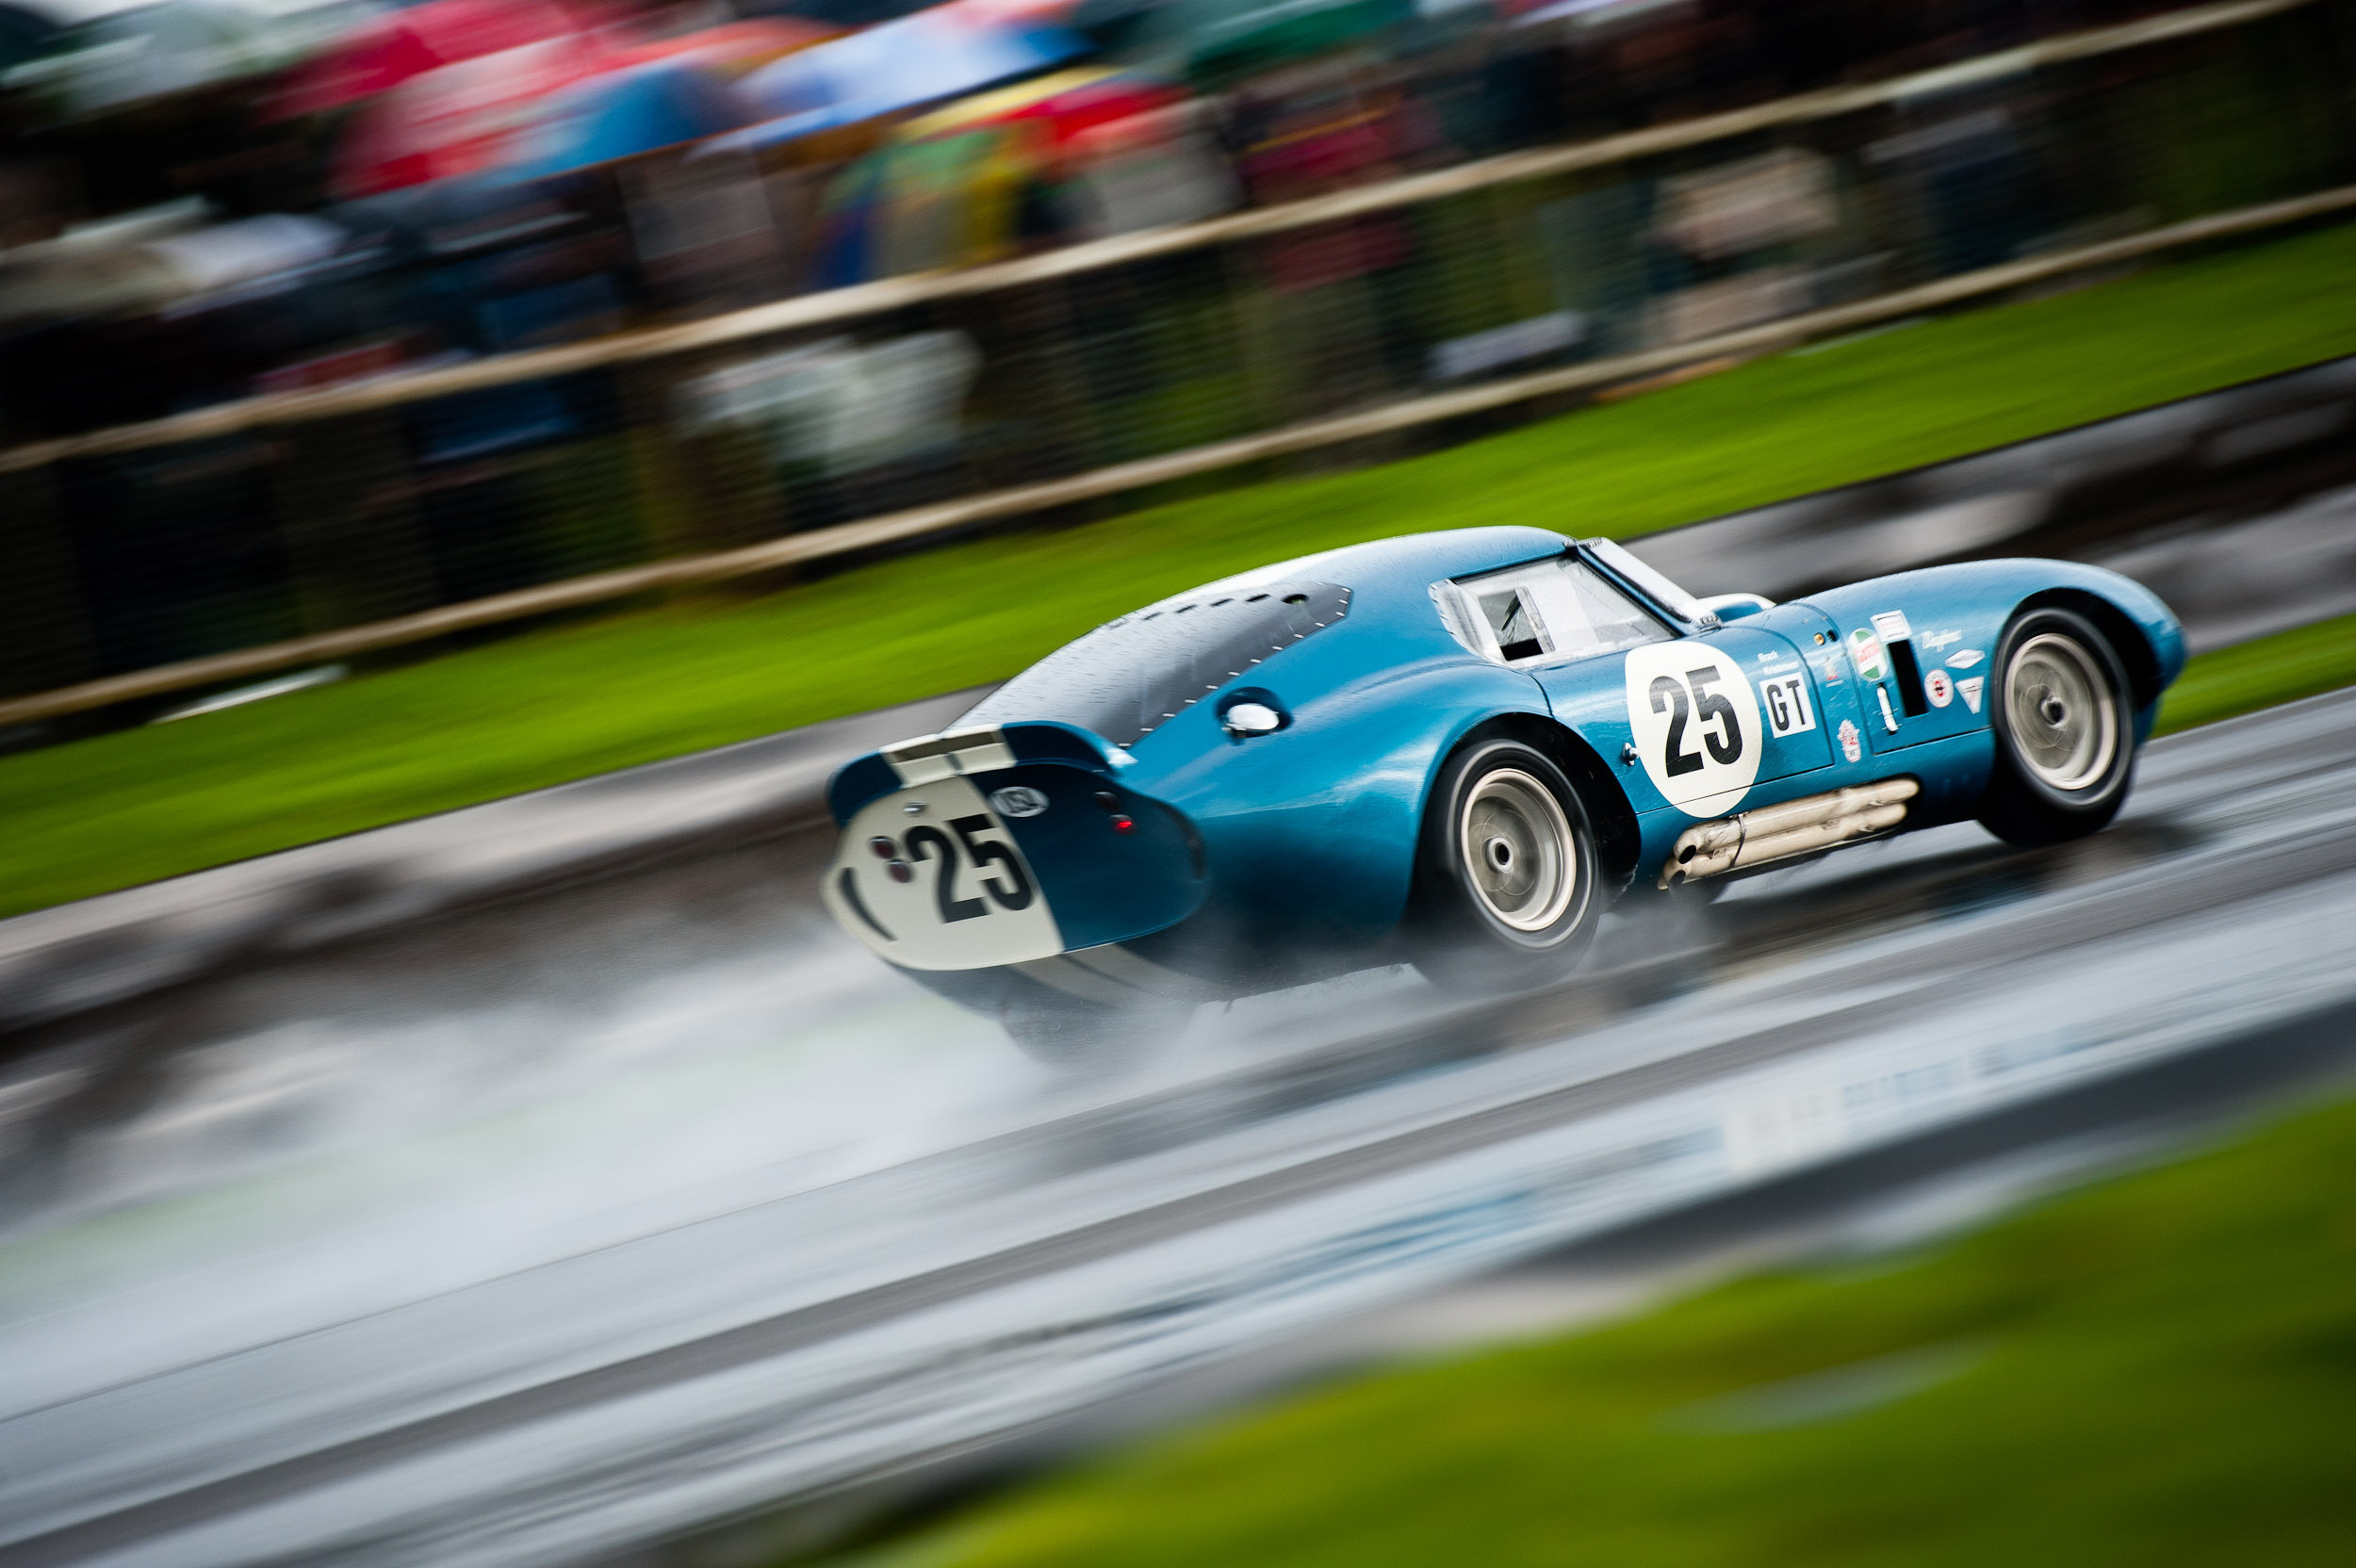 Vintage Mustang Cars Wallpapers 1 Shelby Cobra Daytona Coupe Hd Wallpapers Backgrounds